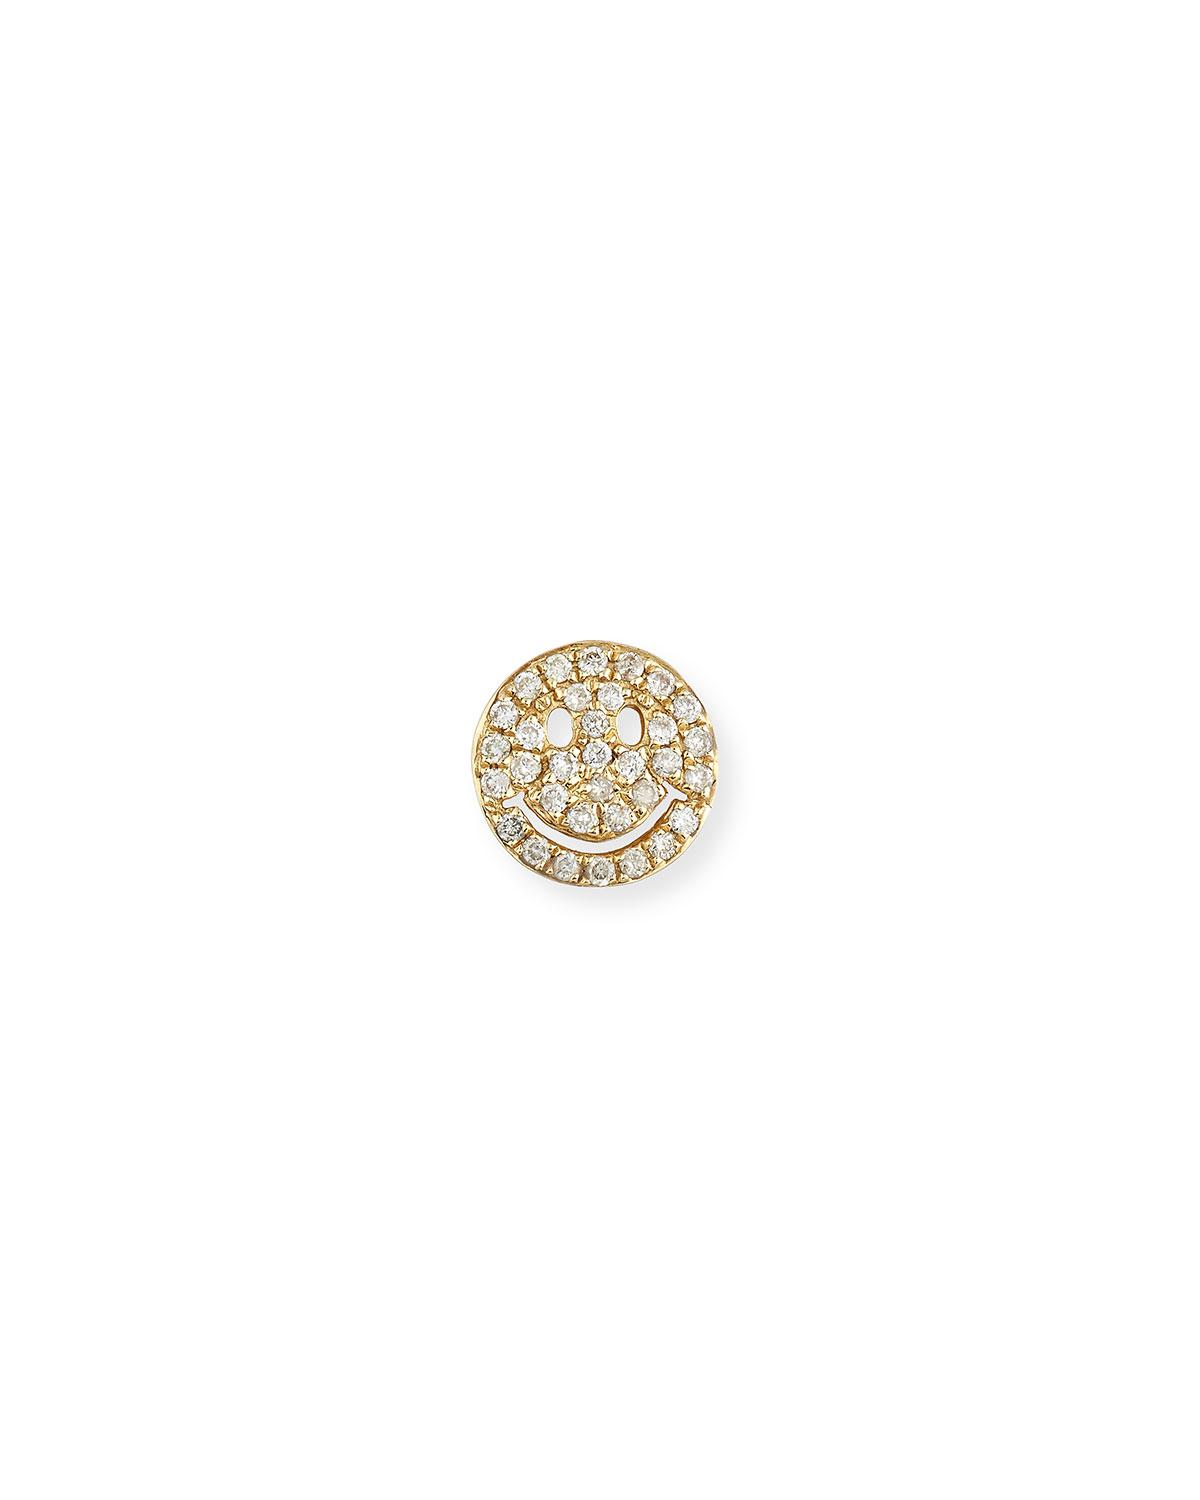 Sydney Evan Large Pavé Diamond Happy Face Stud Earring 1LYHlxBJh